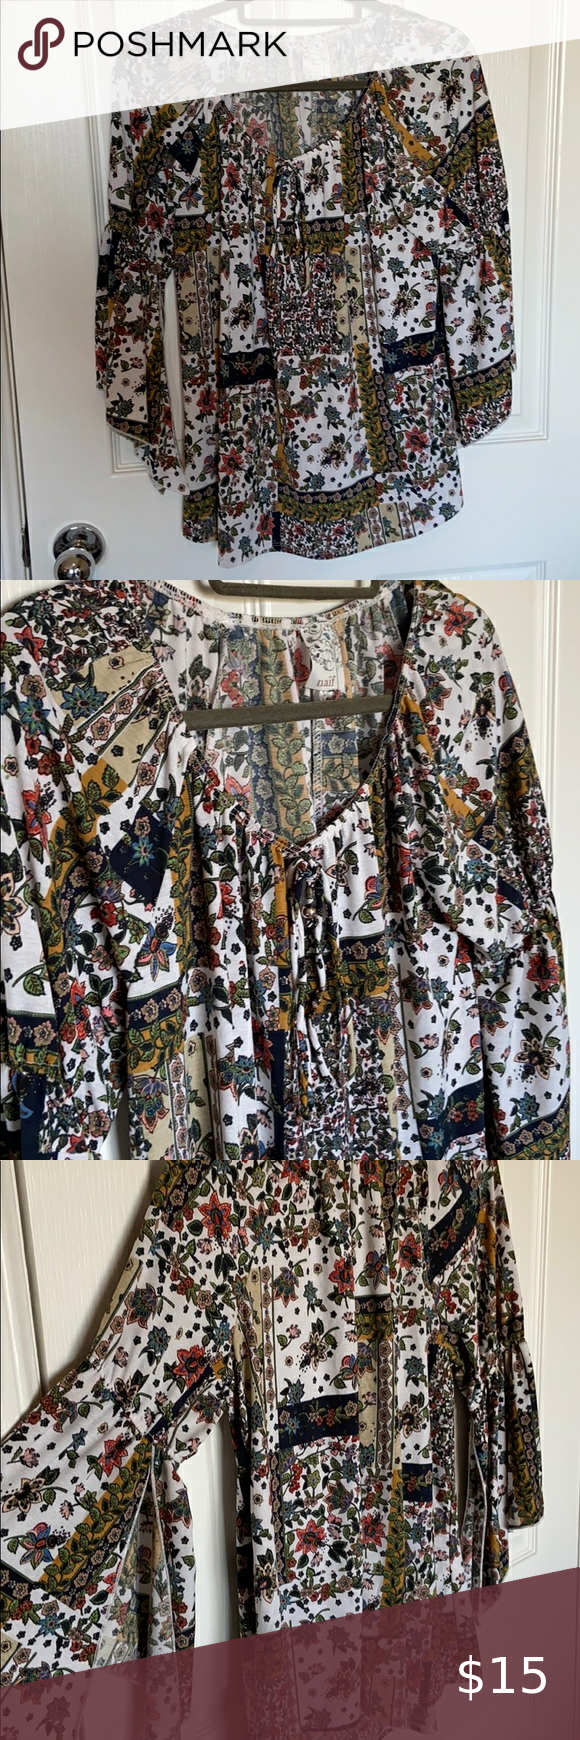 Floral Bell-Sleeved Blouse Boho! Hello! This blouse is casual and chic, with a tassel-tie around the neck and dreamy bell sleeves add movement. Quinte…